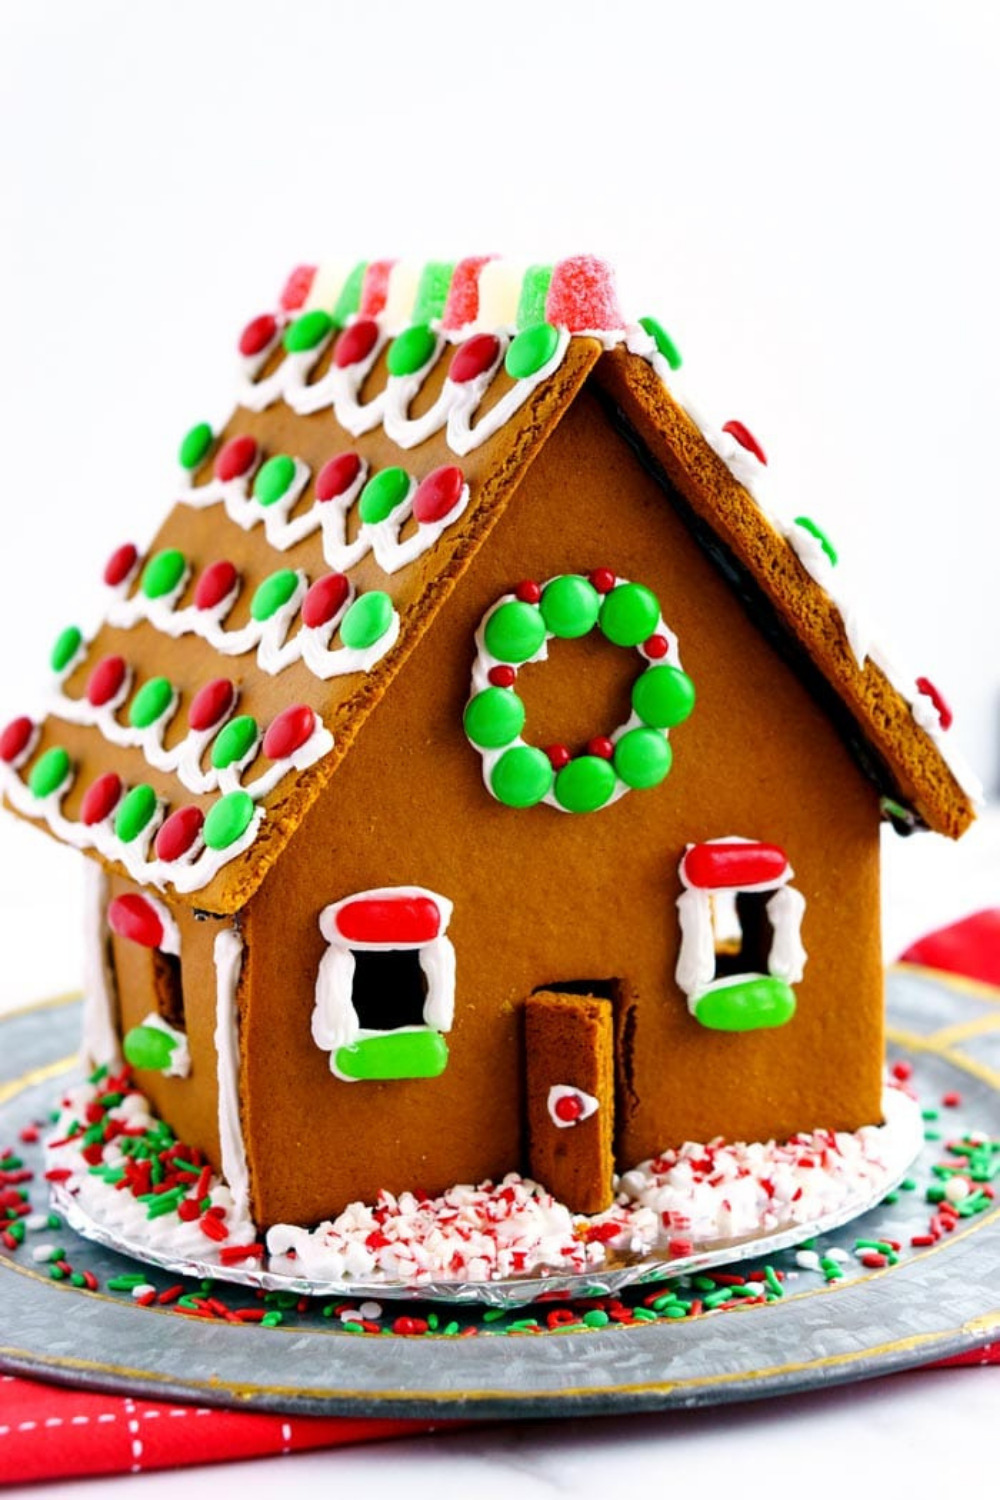 Homemade Gingerbread House DIY + Recipe